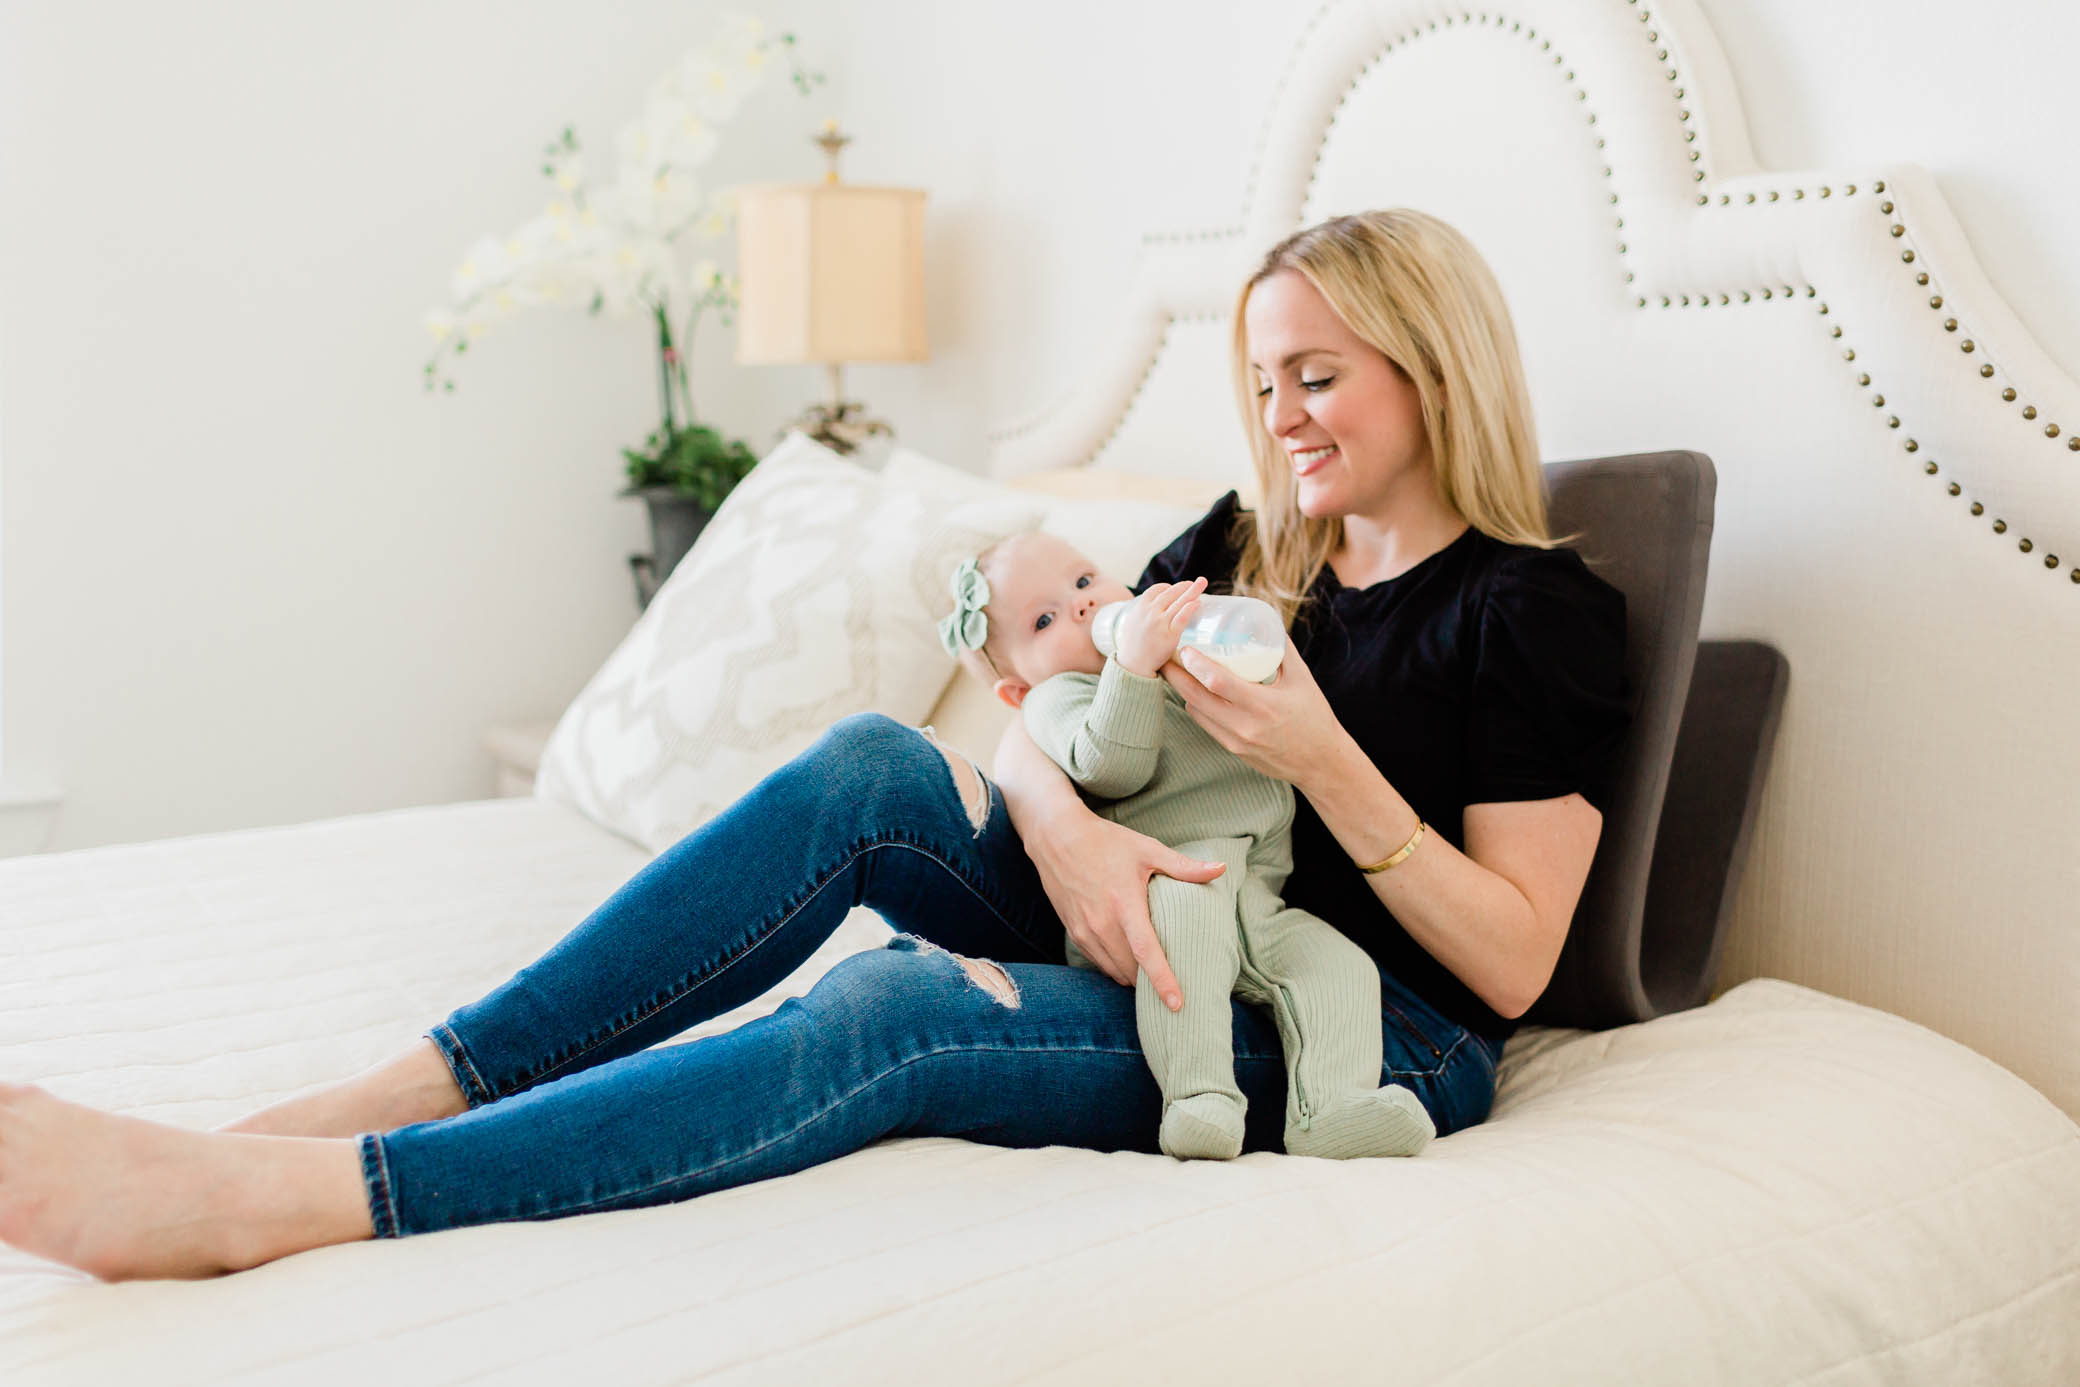 The Portable Rocker for You and Baby: Ready Rocker Review